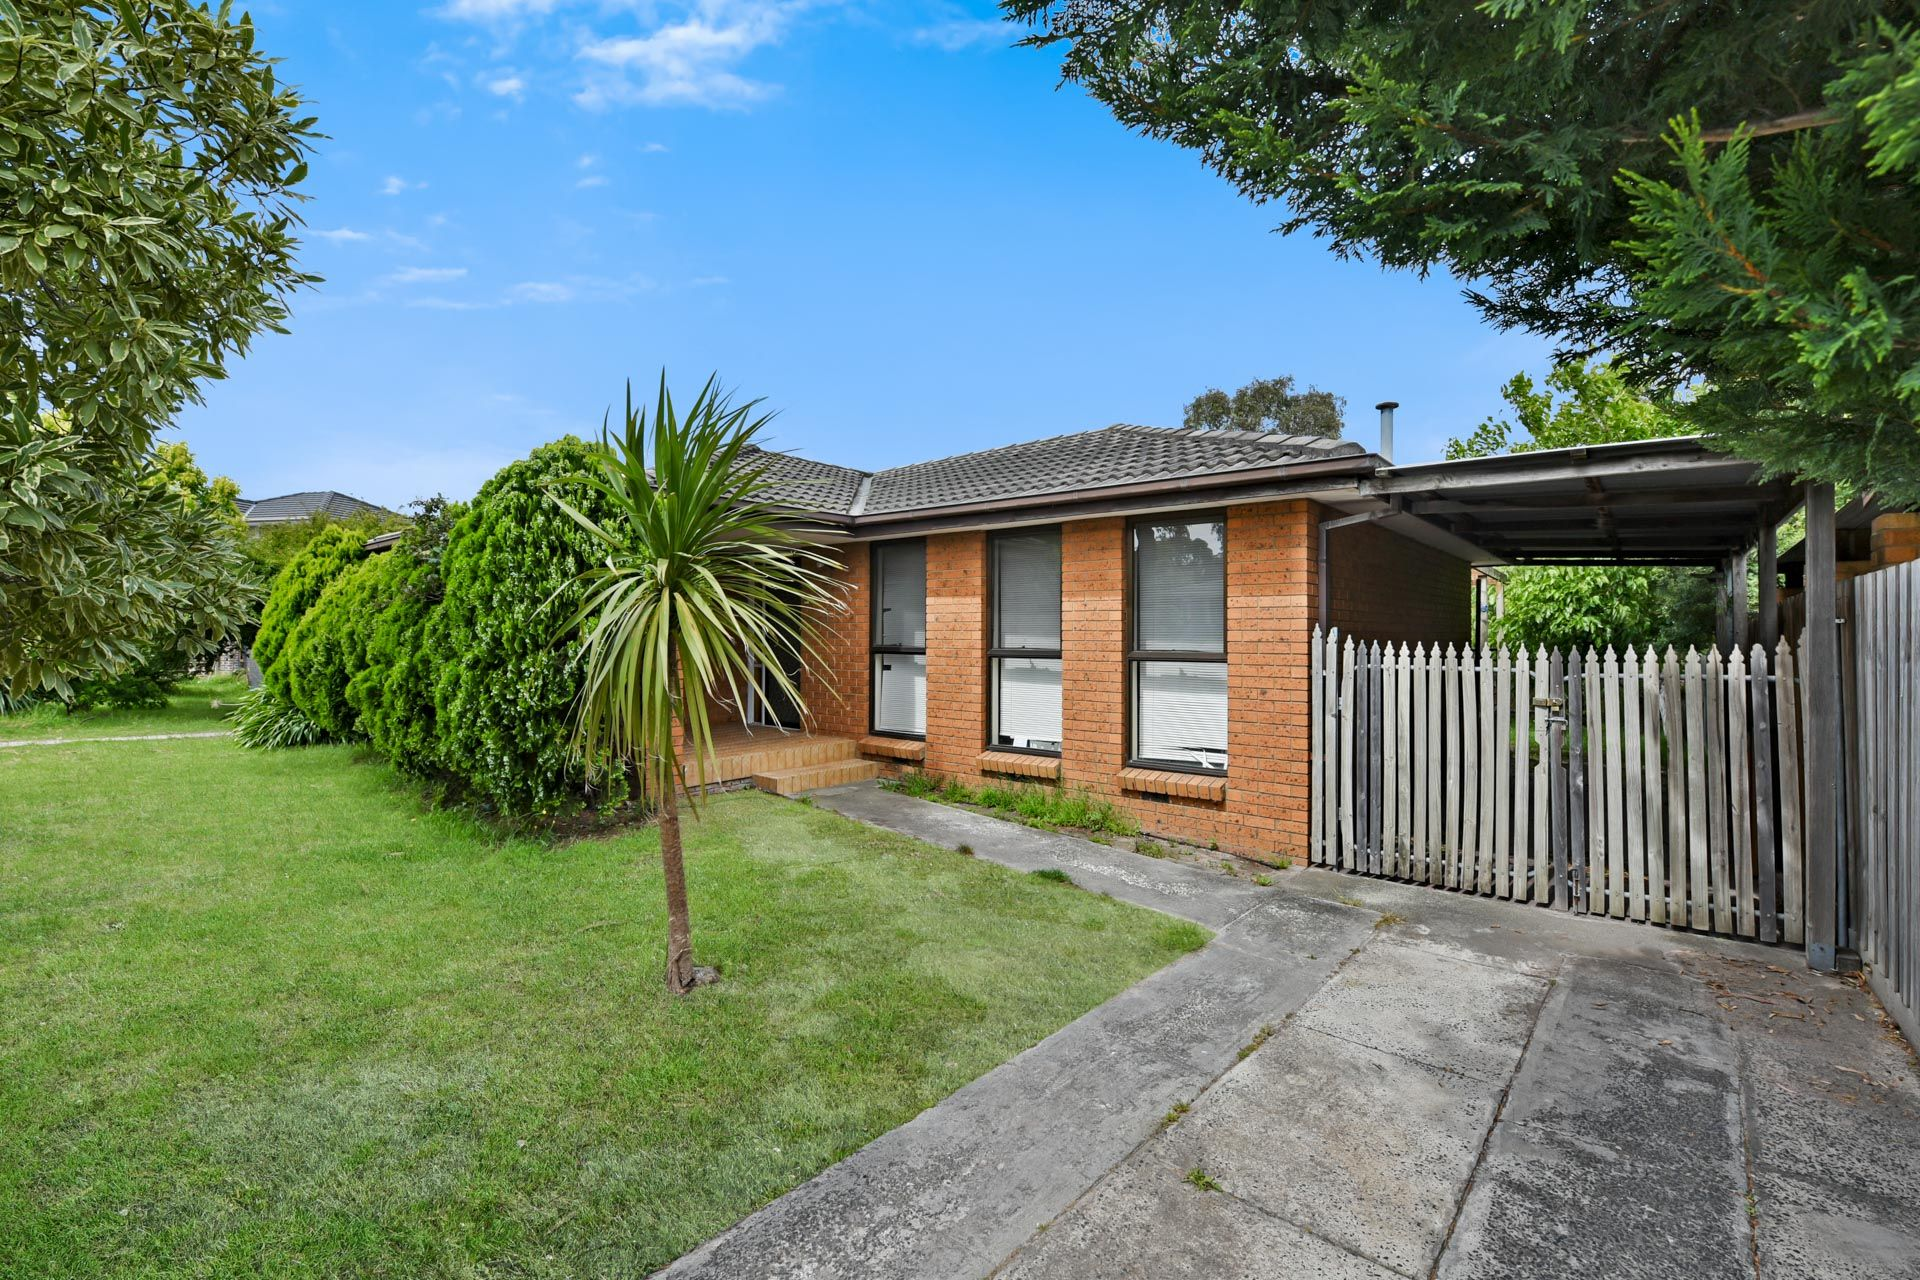 12 Rimington Court, HAMPTON PARK, VIC, 3976 - Image